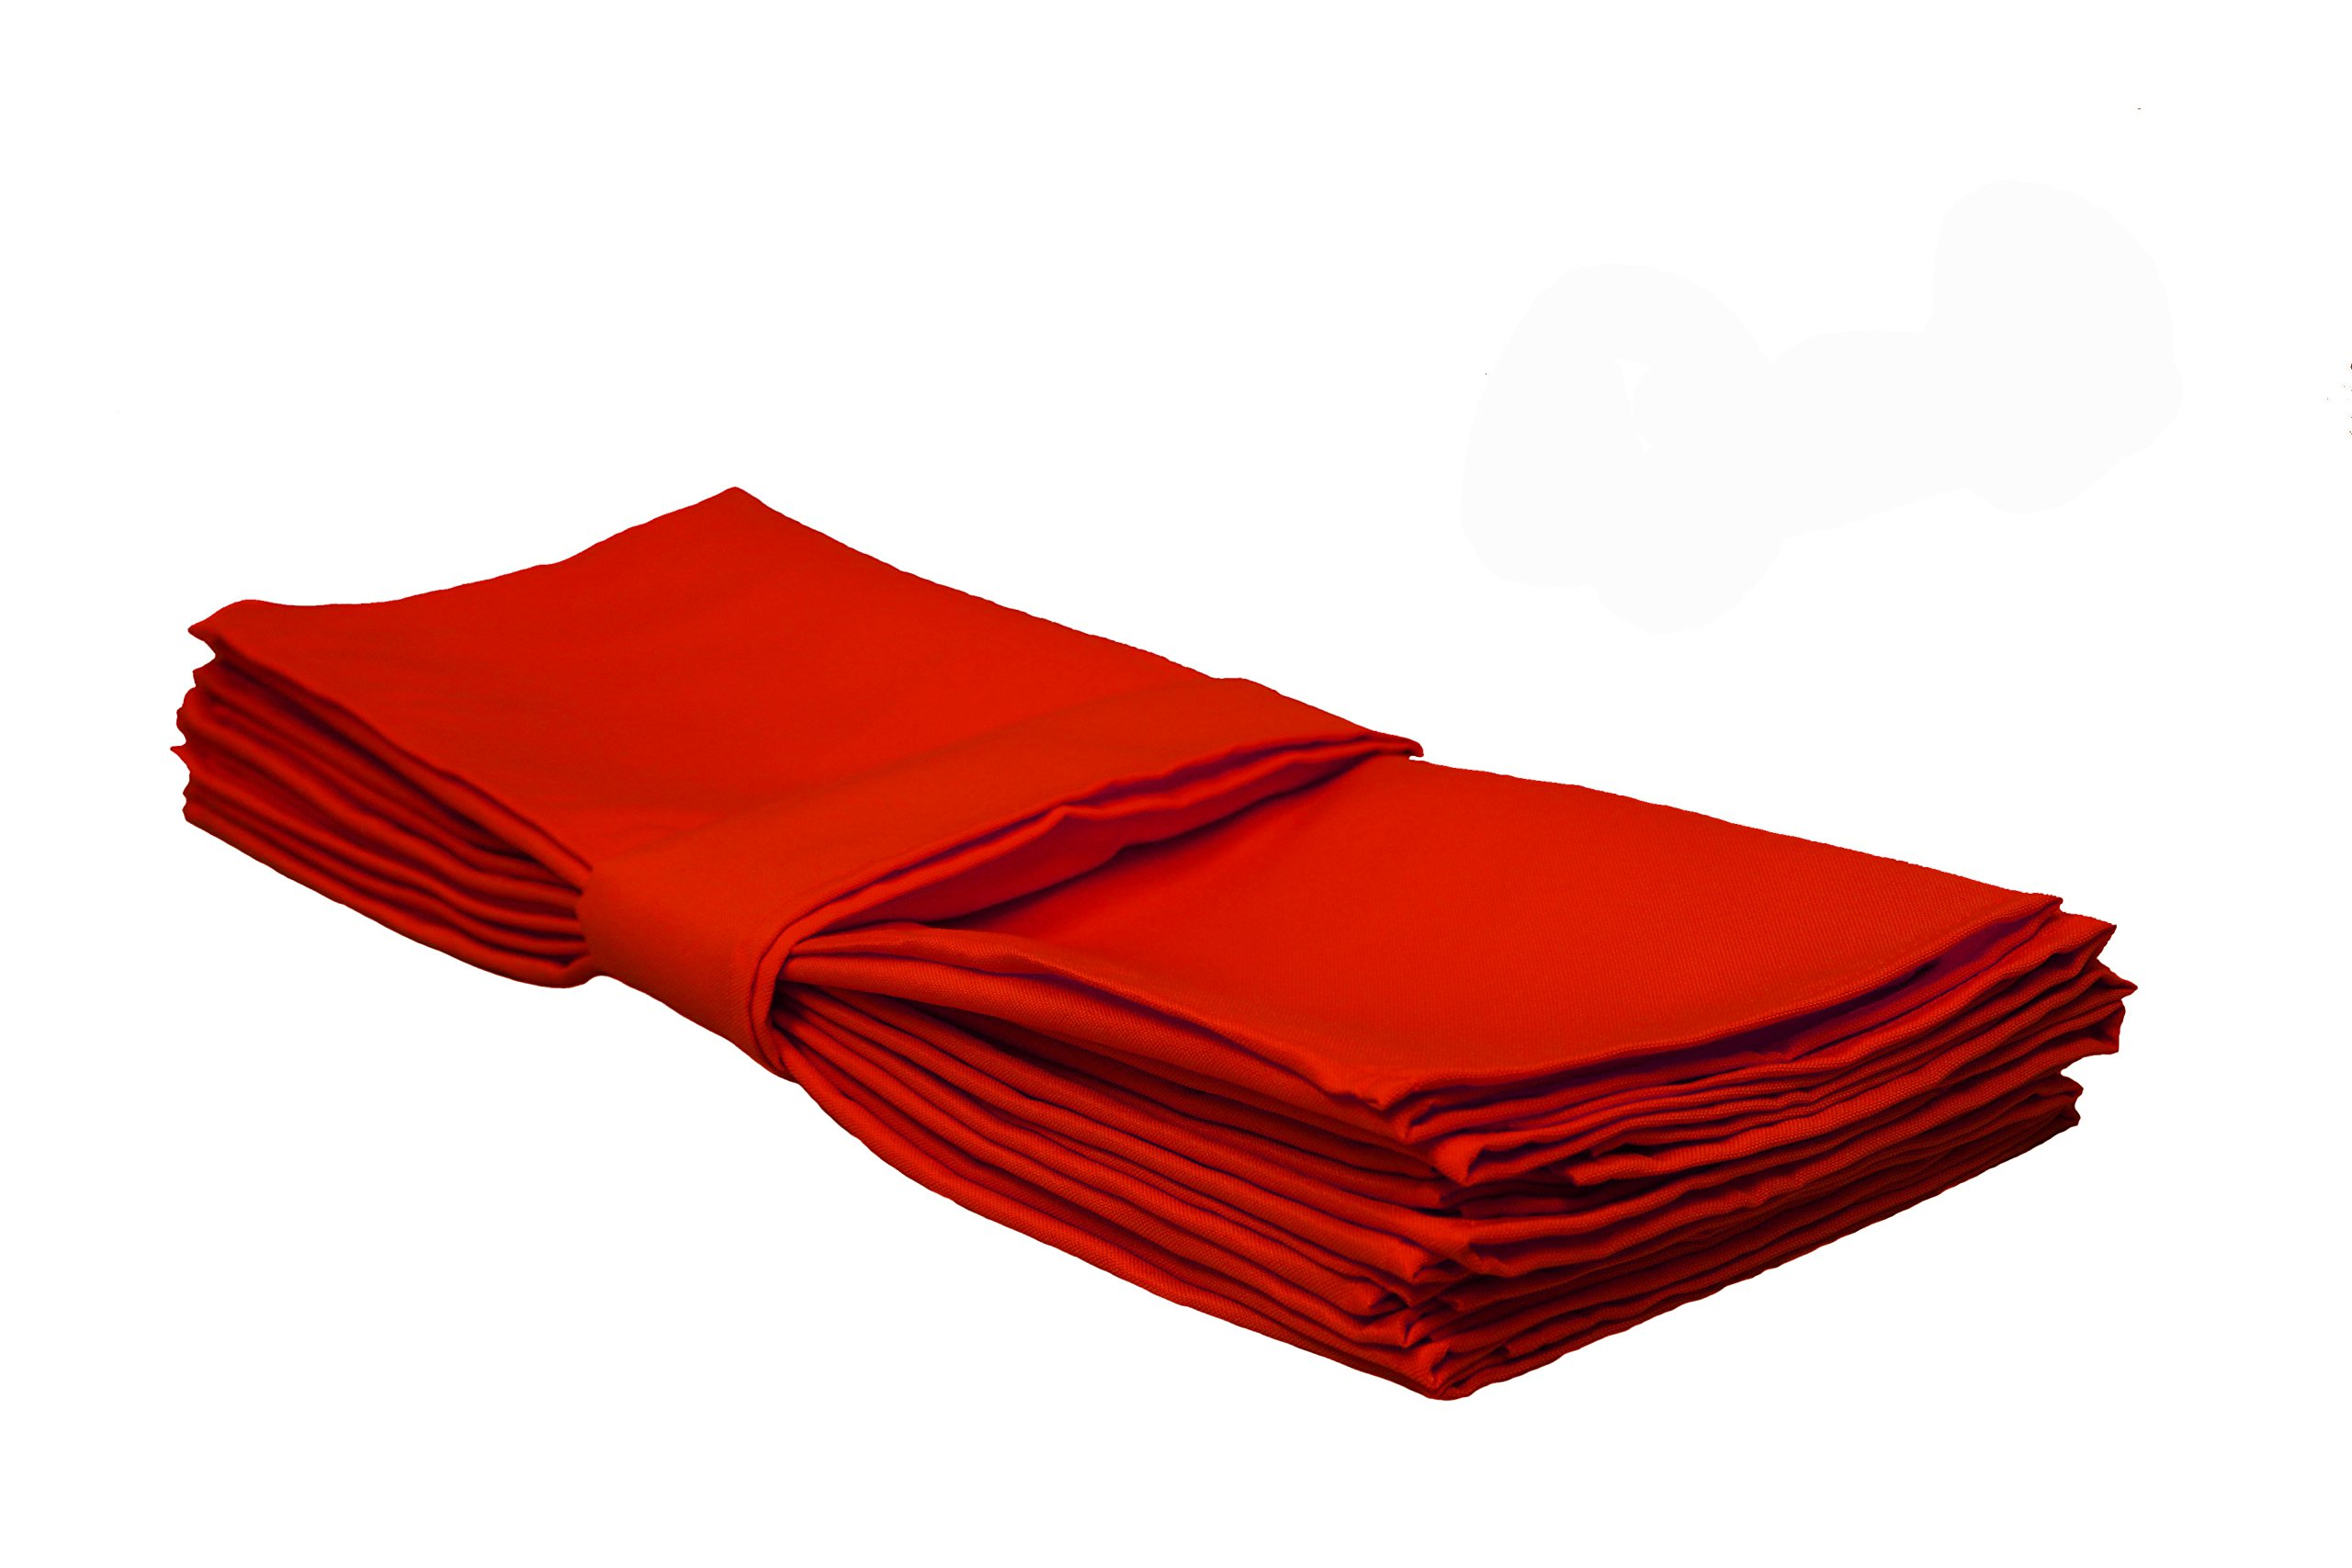 YCC Linen - 20 Inch Square Premium Polyester Cloth Napkins 10 Pack - Red, Oversized, Double Folded and Hemmed Table Napkins for Restaurant, Bistro, Wedding, Thanksgiving and Christmas by Your Chair Covers (Image #2)